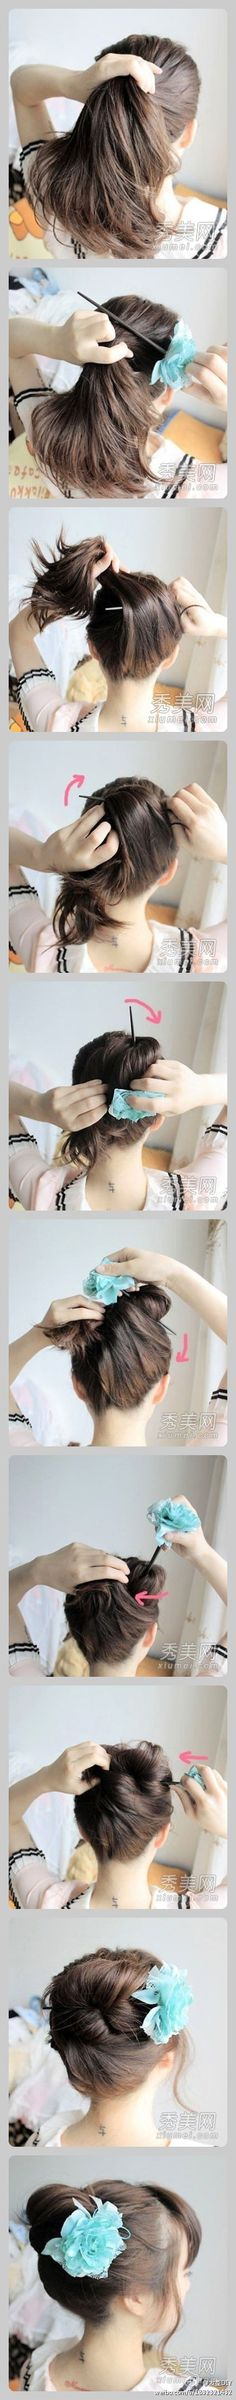 Cool hair idea